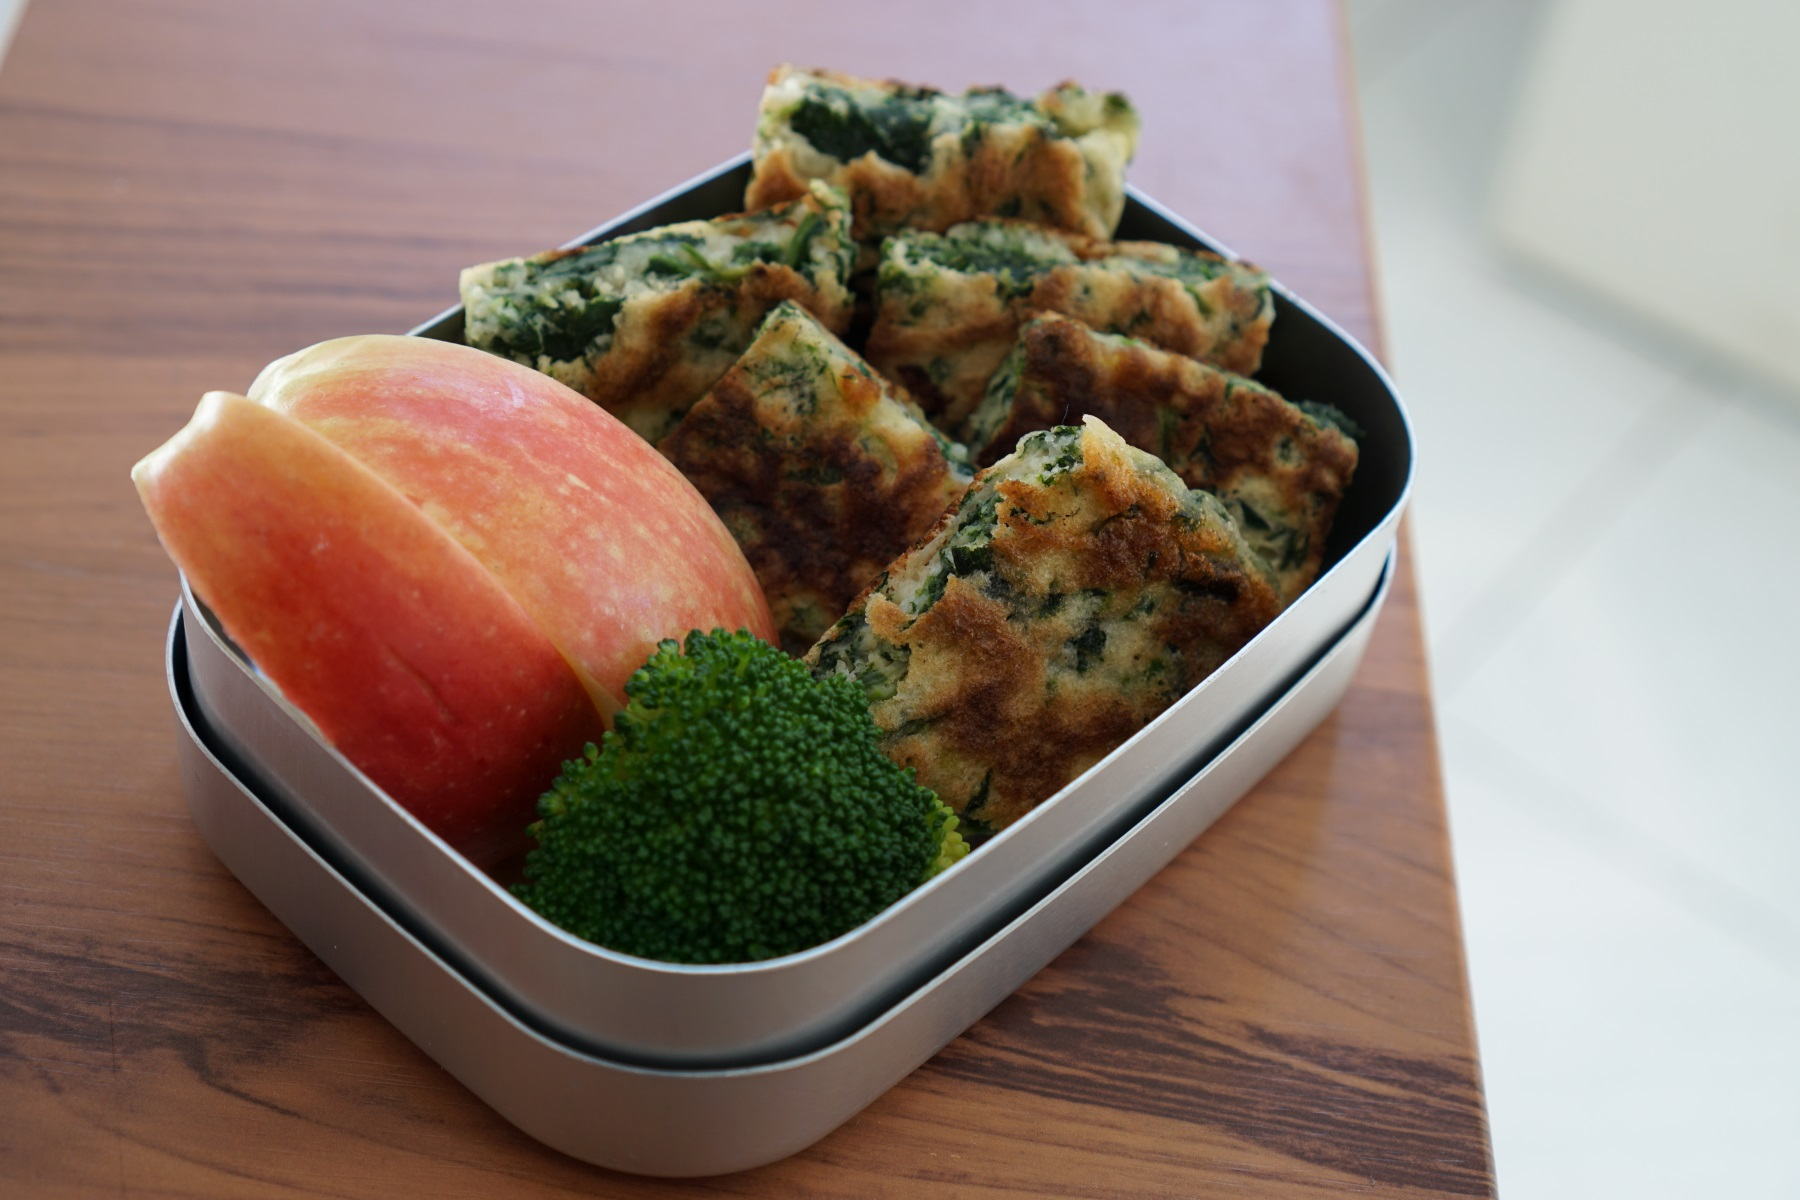 14th Thursday  Spinach cheese pancake, apple and broccoli.  This pancake contained potato starch to keep a moist texture.